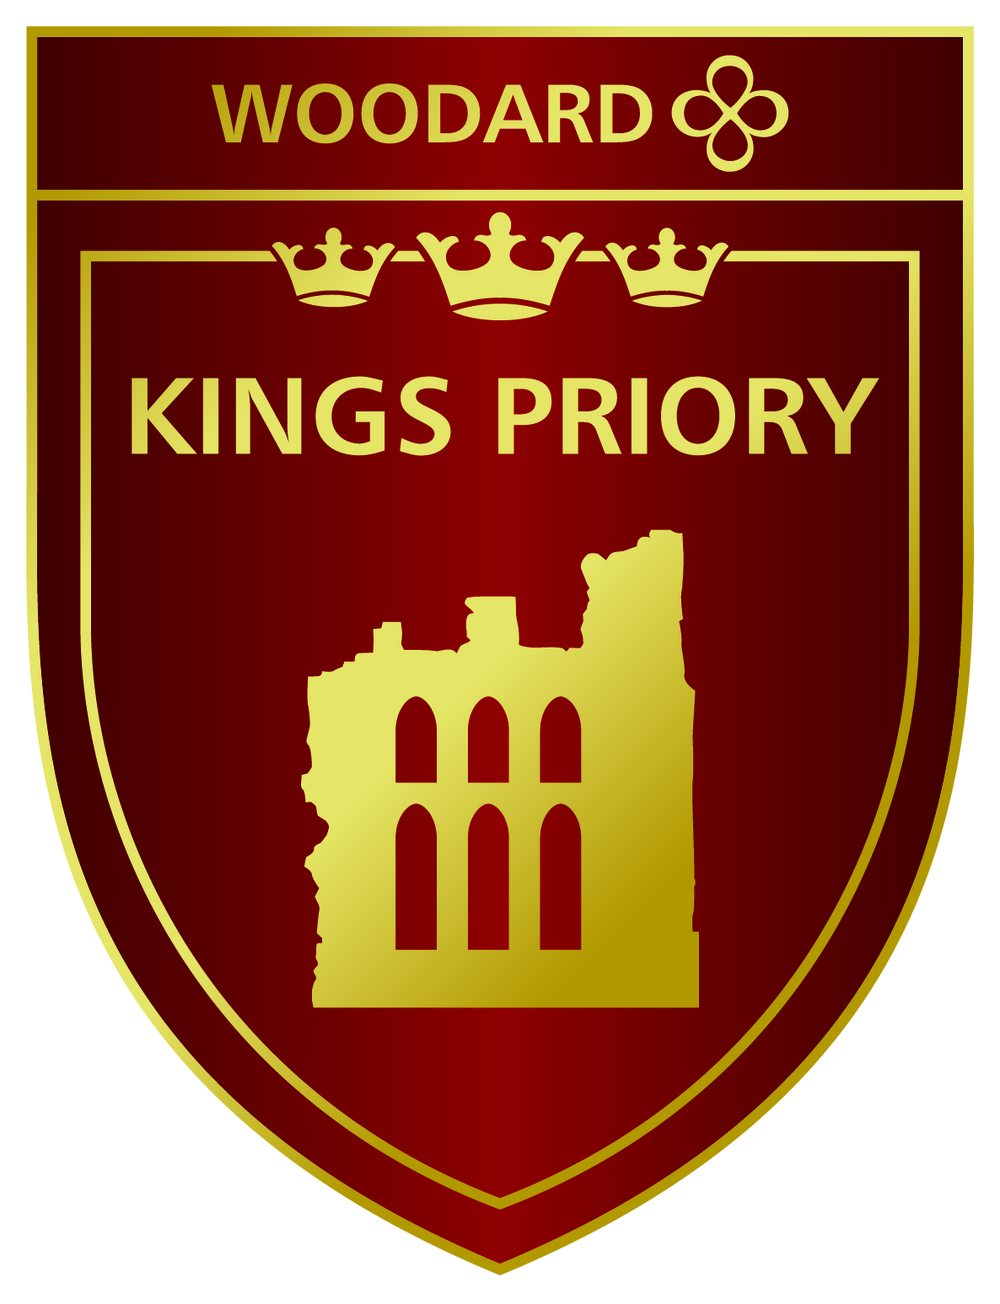 Kings Priory CMYK.jpg